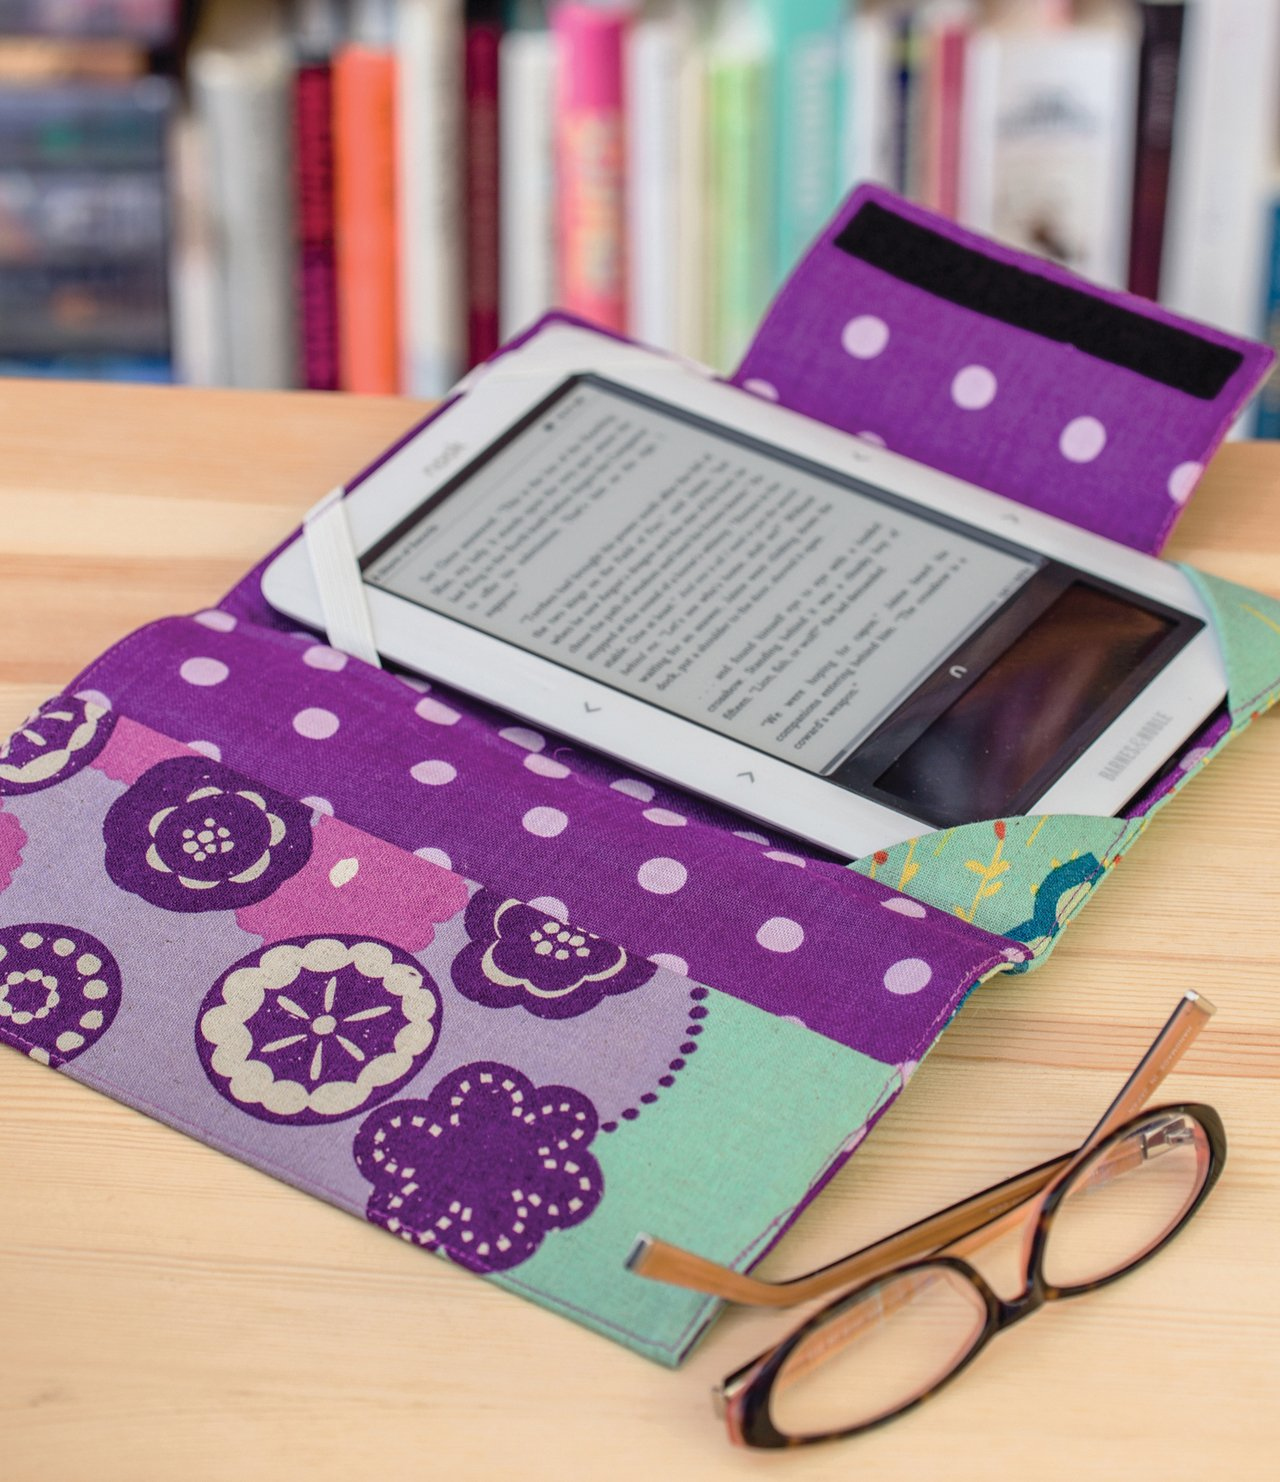 Sew Practical 13 Fun To Designs For You And Your Home That Patchwork Place 0744527112456 Amazon Books